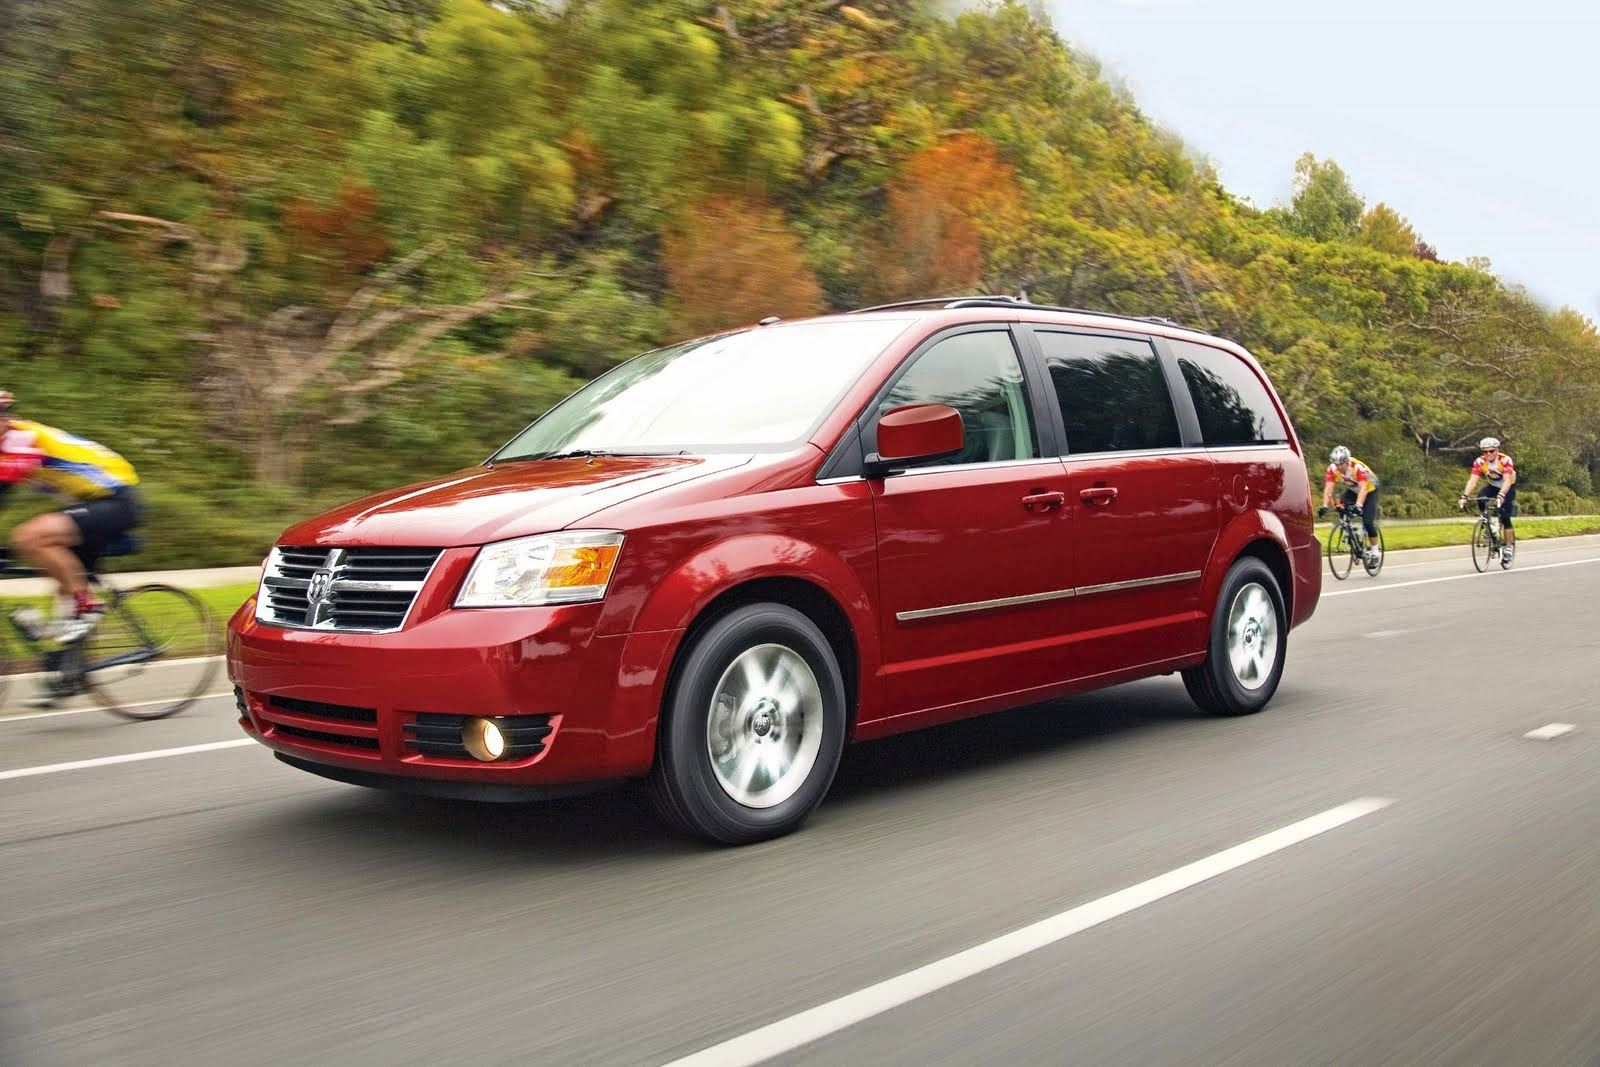 Car repeating: Dodge Caravan, red ? California coastal trip  #agsoc2014